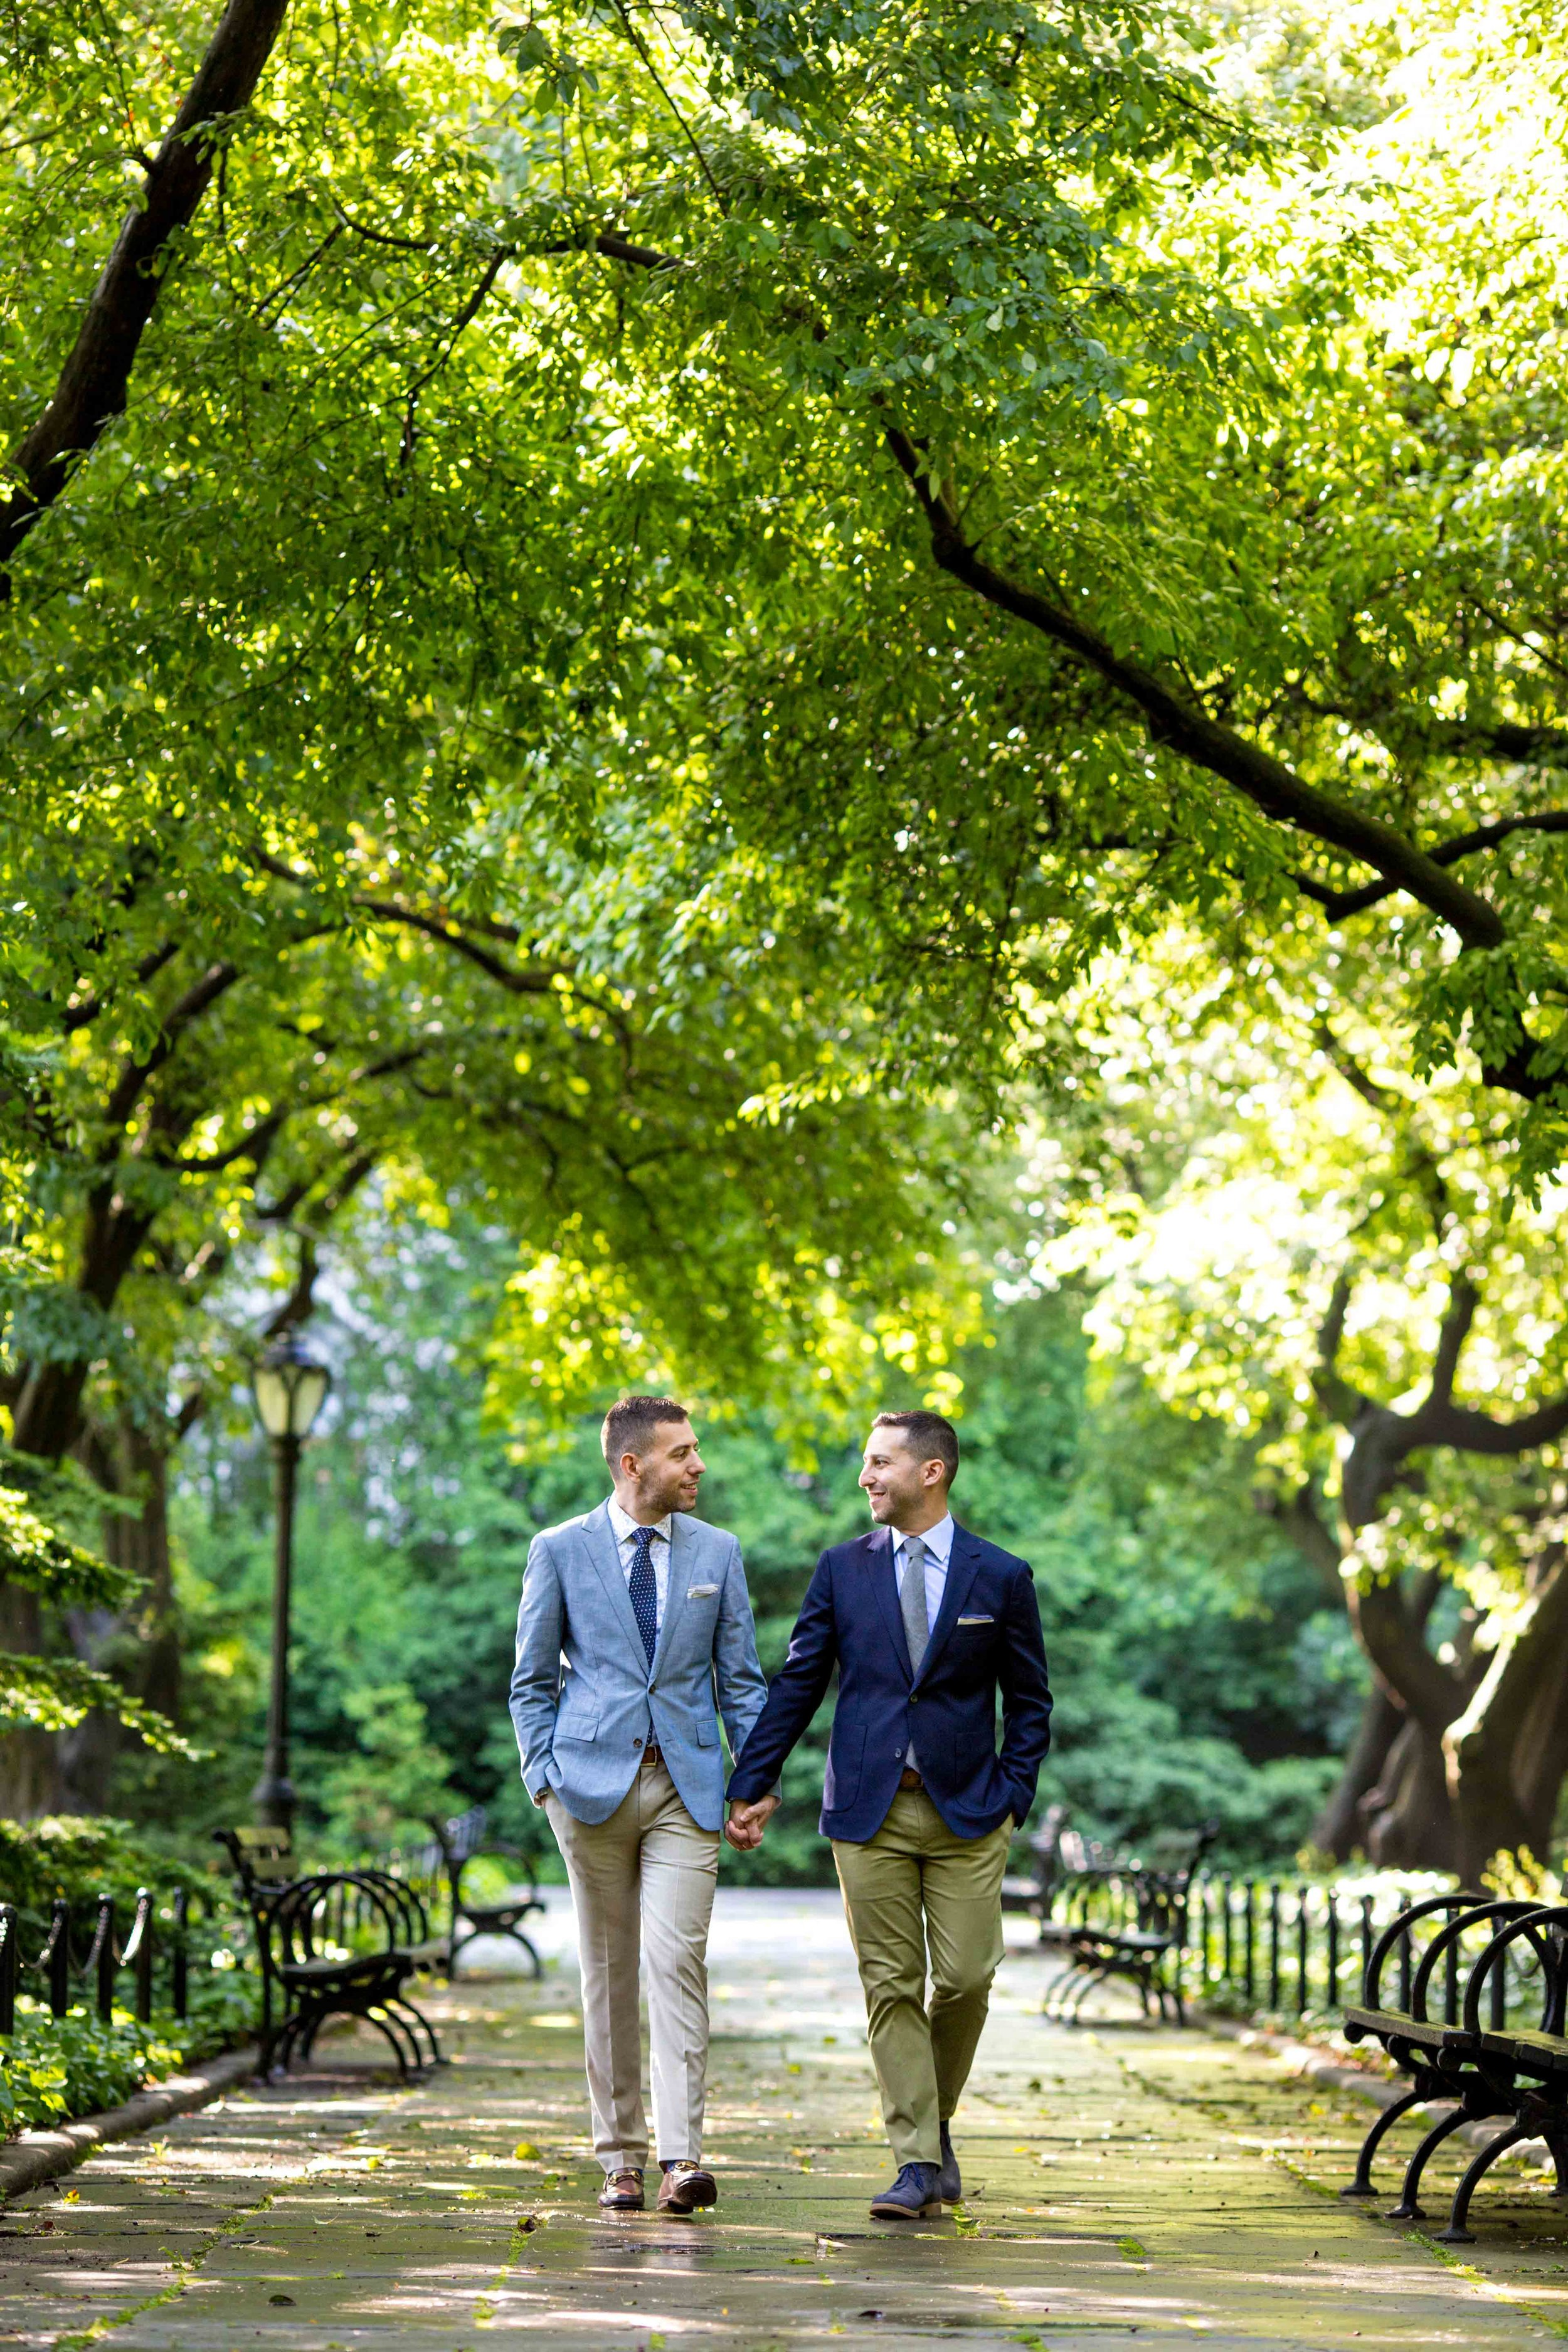 New York City NYC Wedding Photographer Engagement Photo Session Shoot Same  Sex Gay Central Park Conservatory